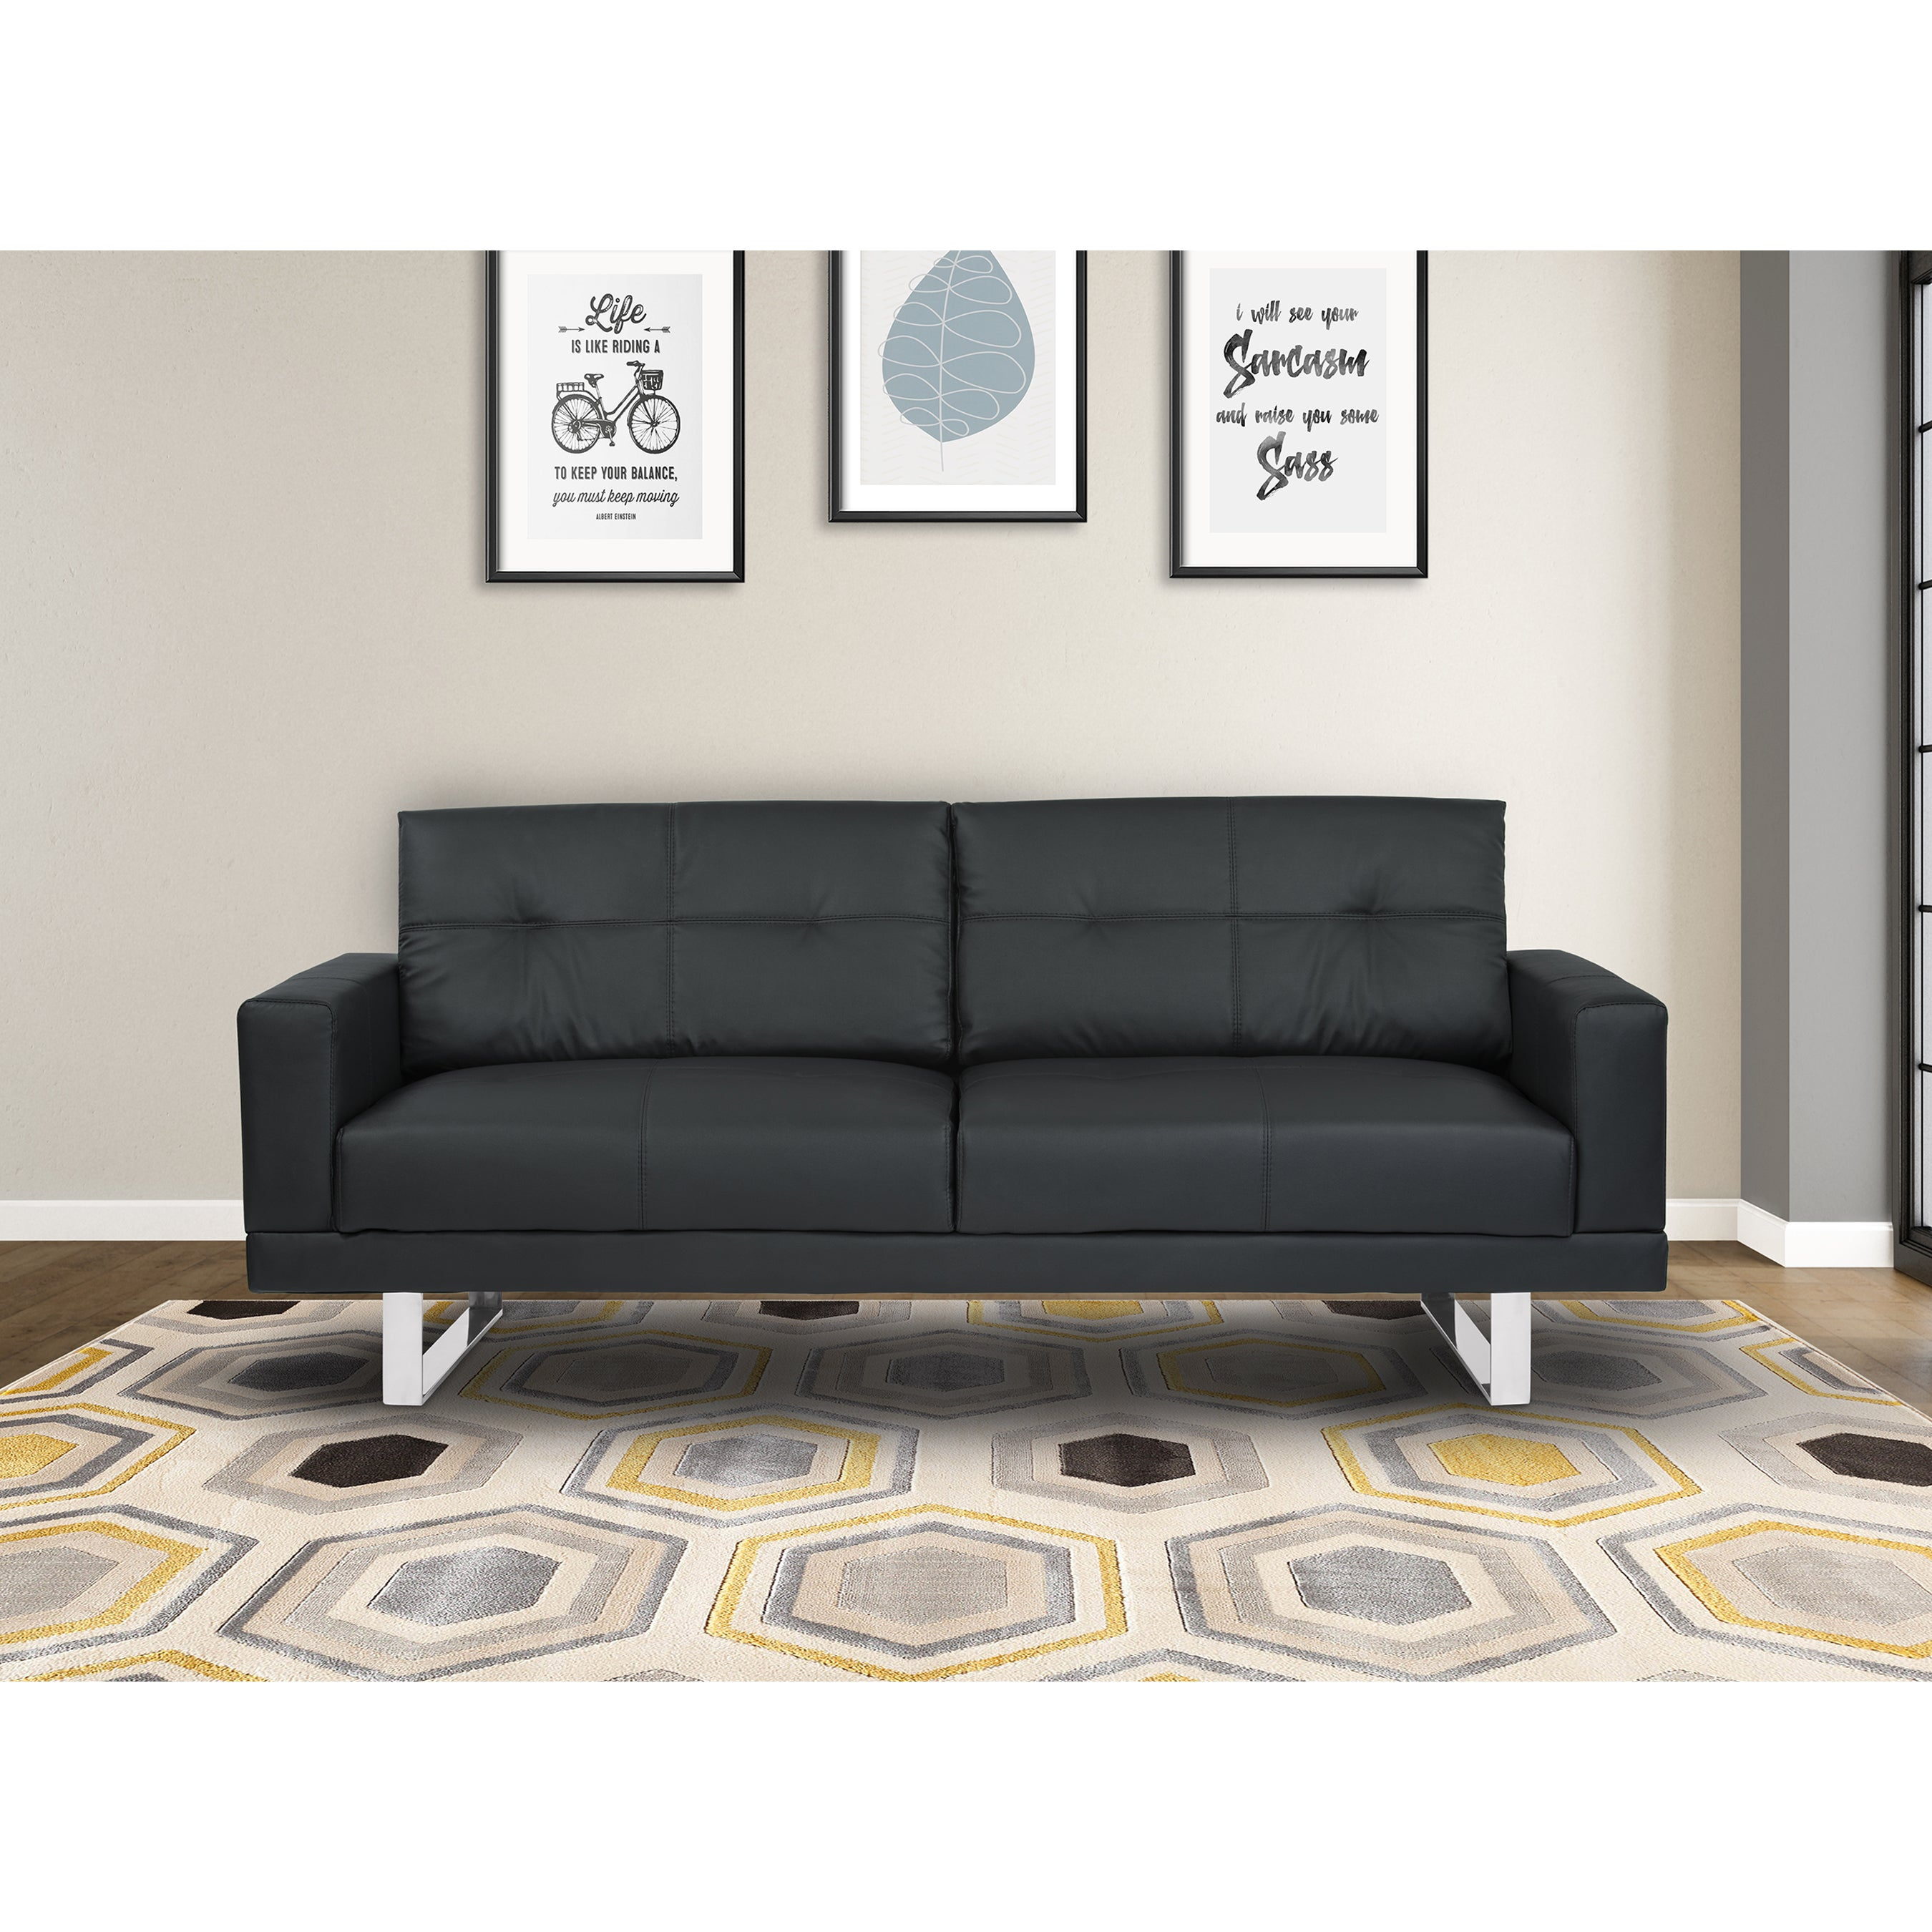 Shop Armen Living Lincoln Mid Century Black Tufted Faux Leather Sofa With  Chrome Legs   On Sale   Free Shipping Today   Overstock.com   14679999